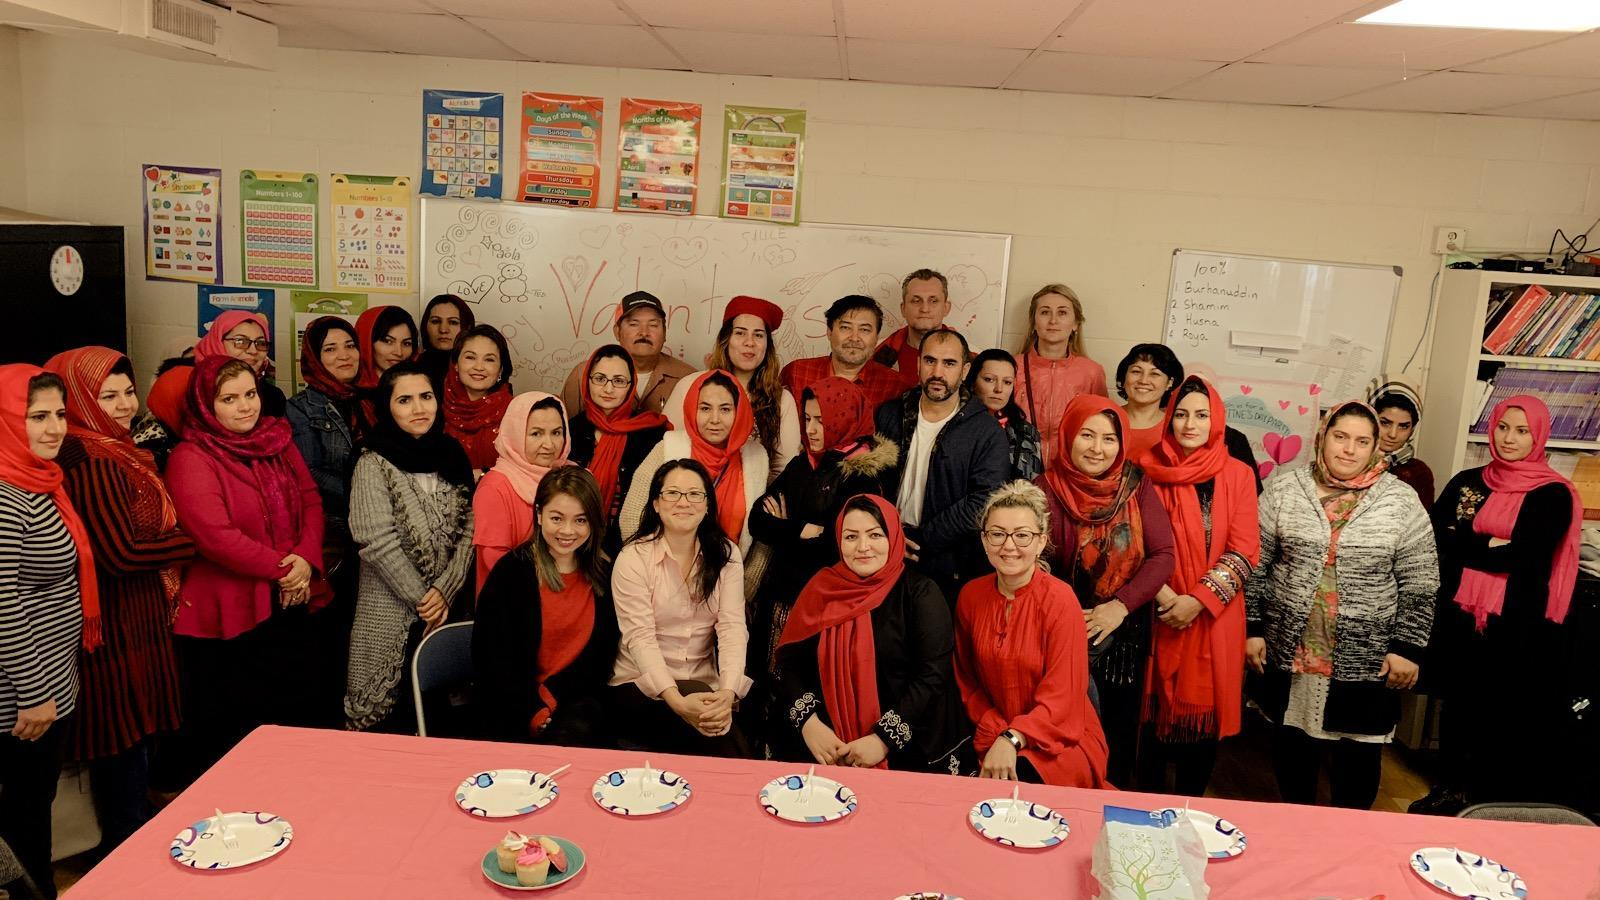 Group picture of students and staff dressed in red and pink for a Valentine's Day party.